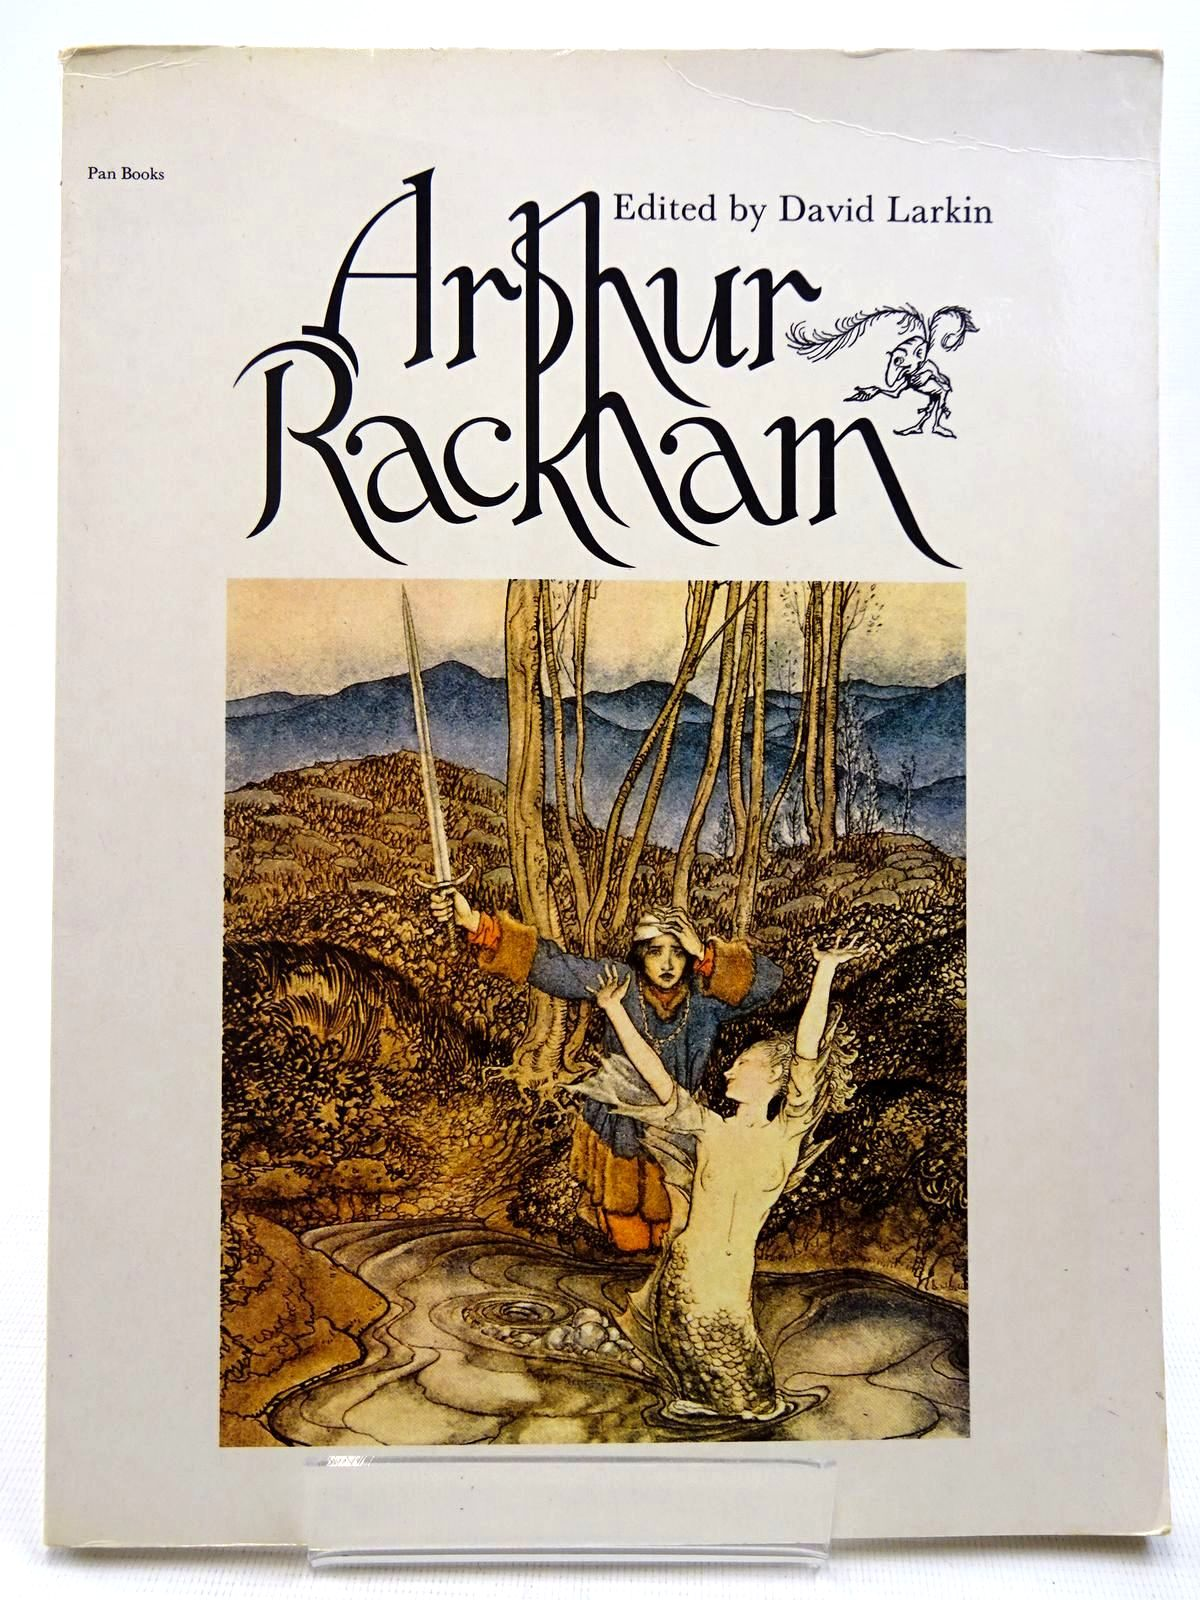 Photo of ARTHUR RACKHAM written by Larkin, David illustrated by Rackham, Arthur published by Pan Books (STOCK CODE: 2128539)  for sale by Stella & Rose's Books